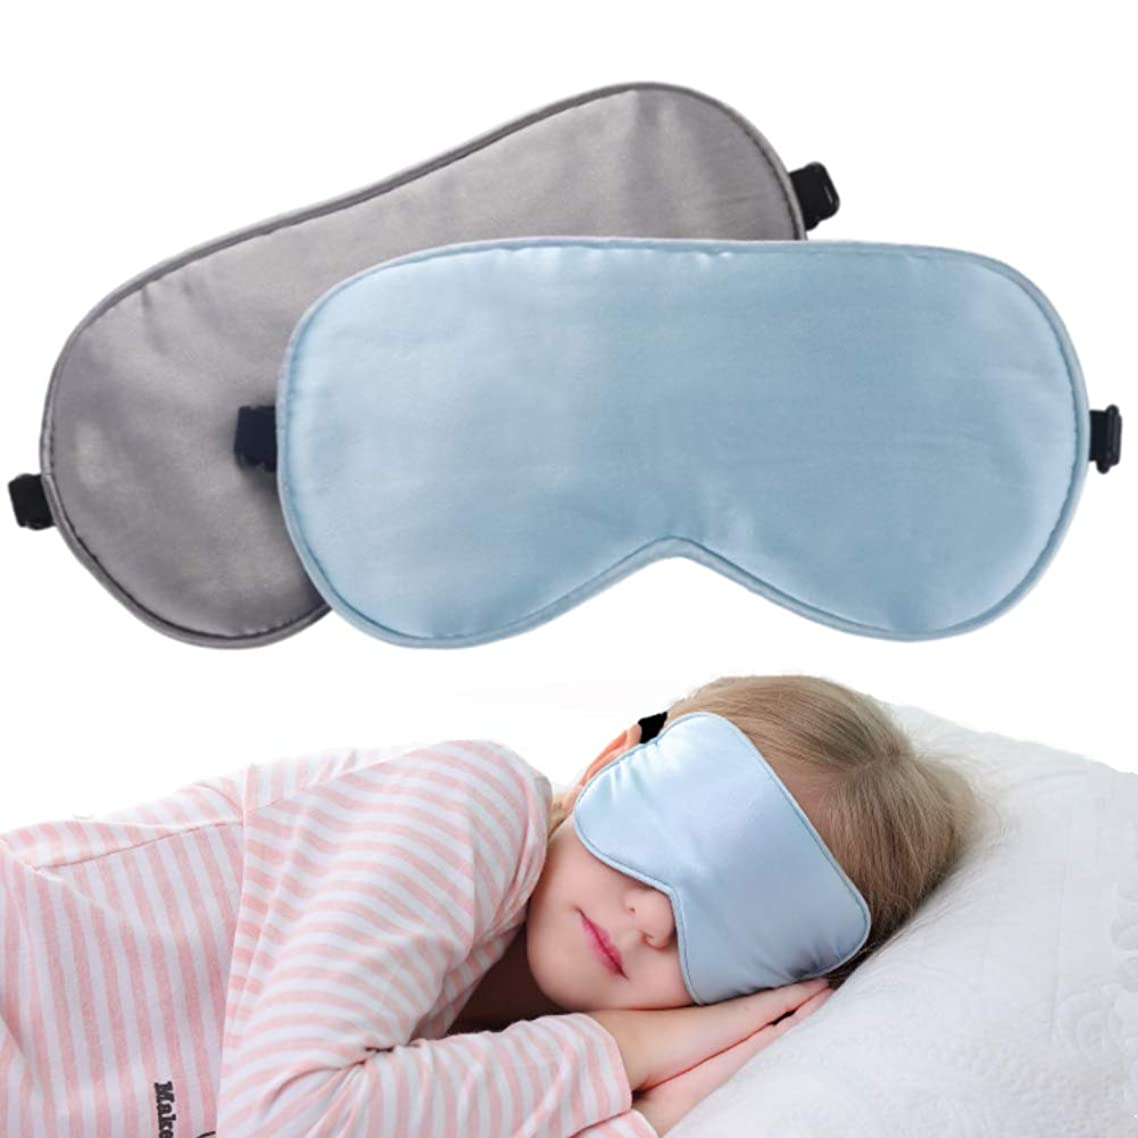 2 Pack Lonfrote Children Eye Mask Smooth Blindford for Travel Relax Supper Soft Natural Silk Sleep Mask for Kids Sleeping